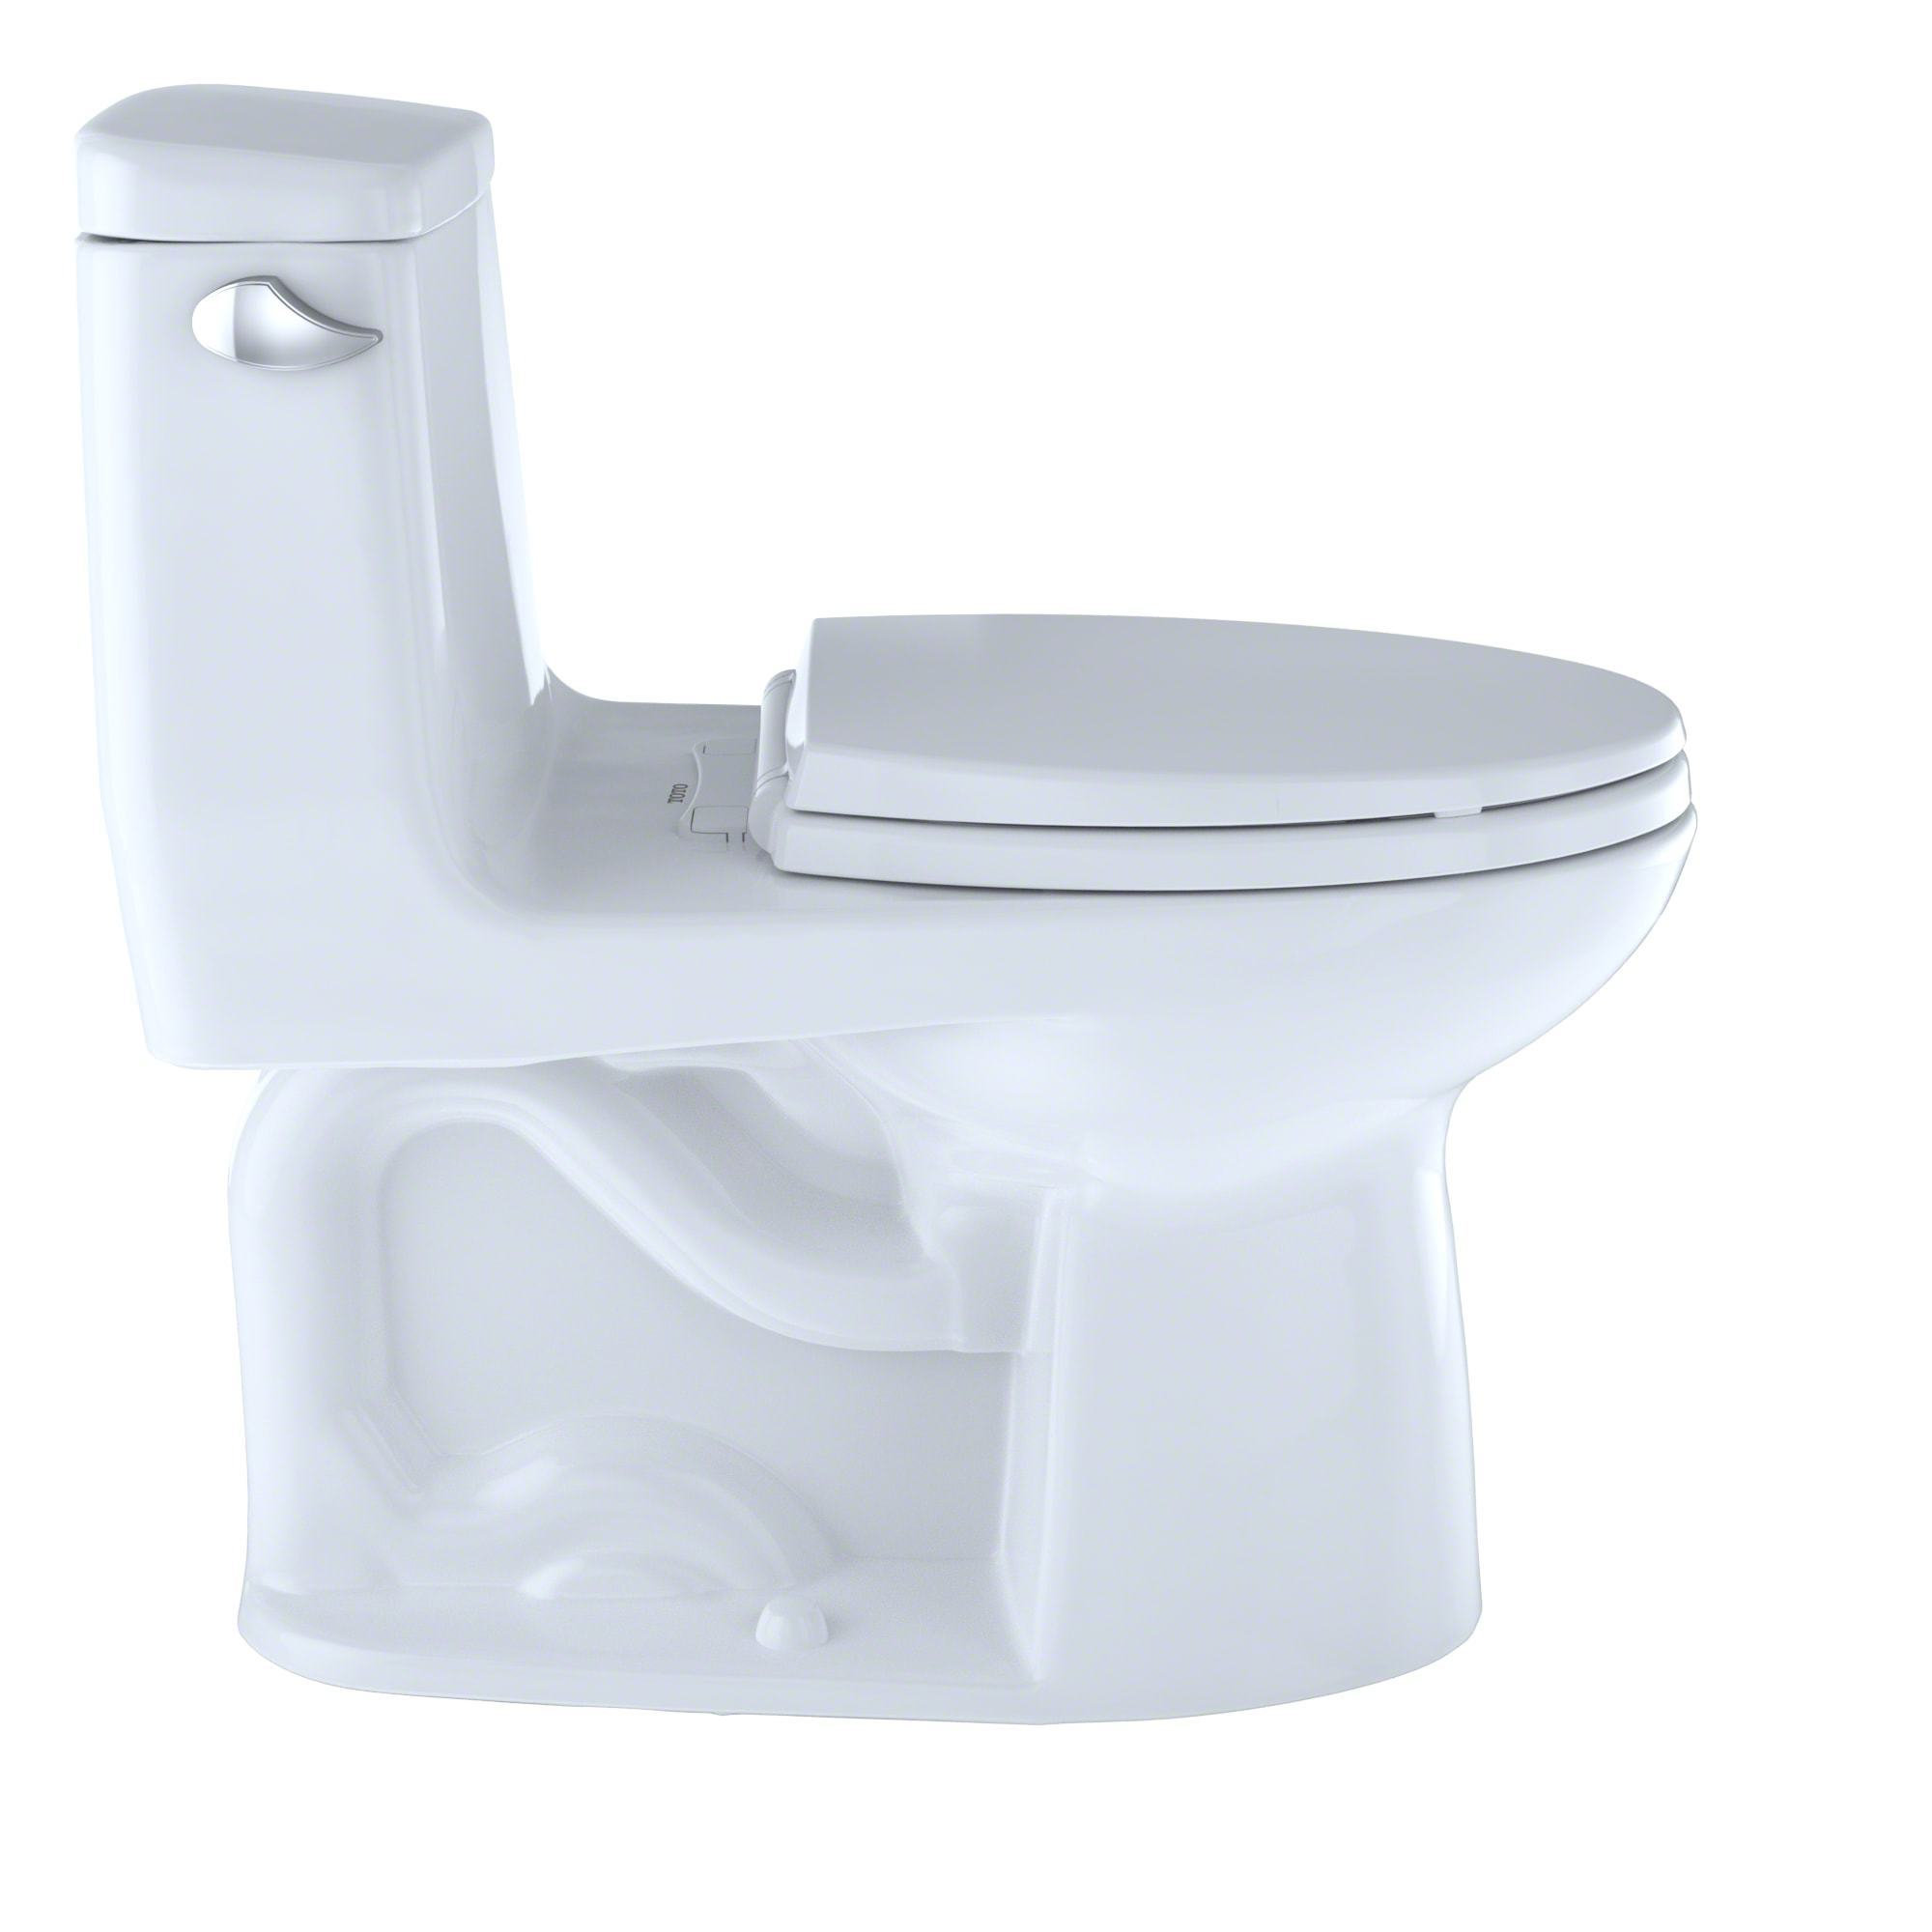 Toto UltraMax One-Piece Elongated 1.6 GPF Toilet with CeFiONtect ...